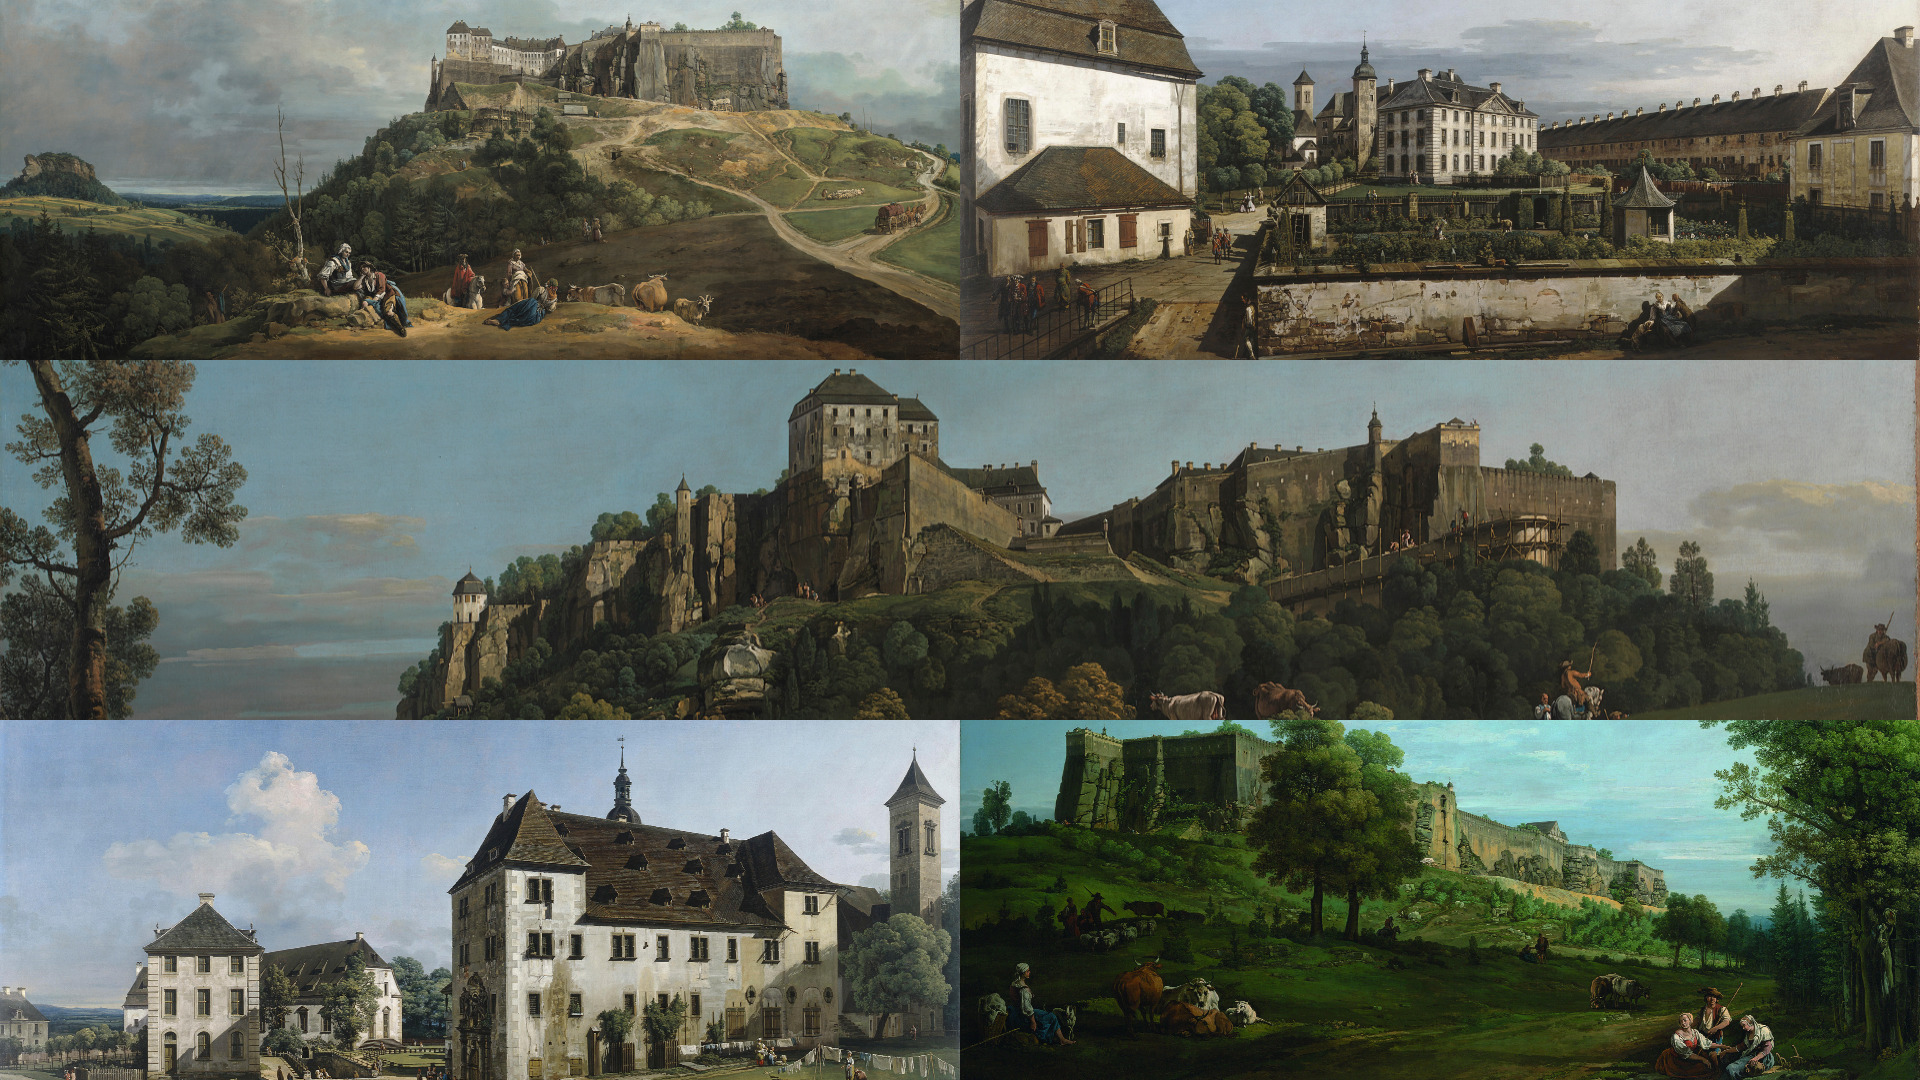 Bernardo Bellotto (1722–1780) The Fortress of Königstein Courtyard_Five versions in one_by Alain Chivilò